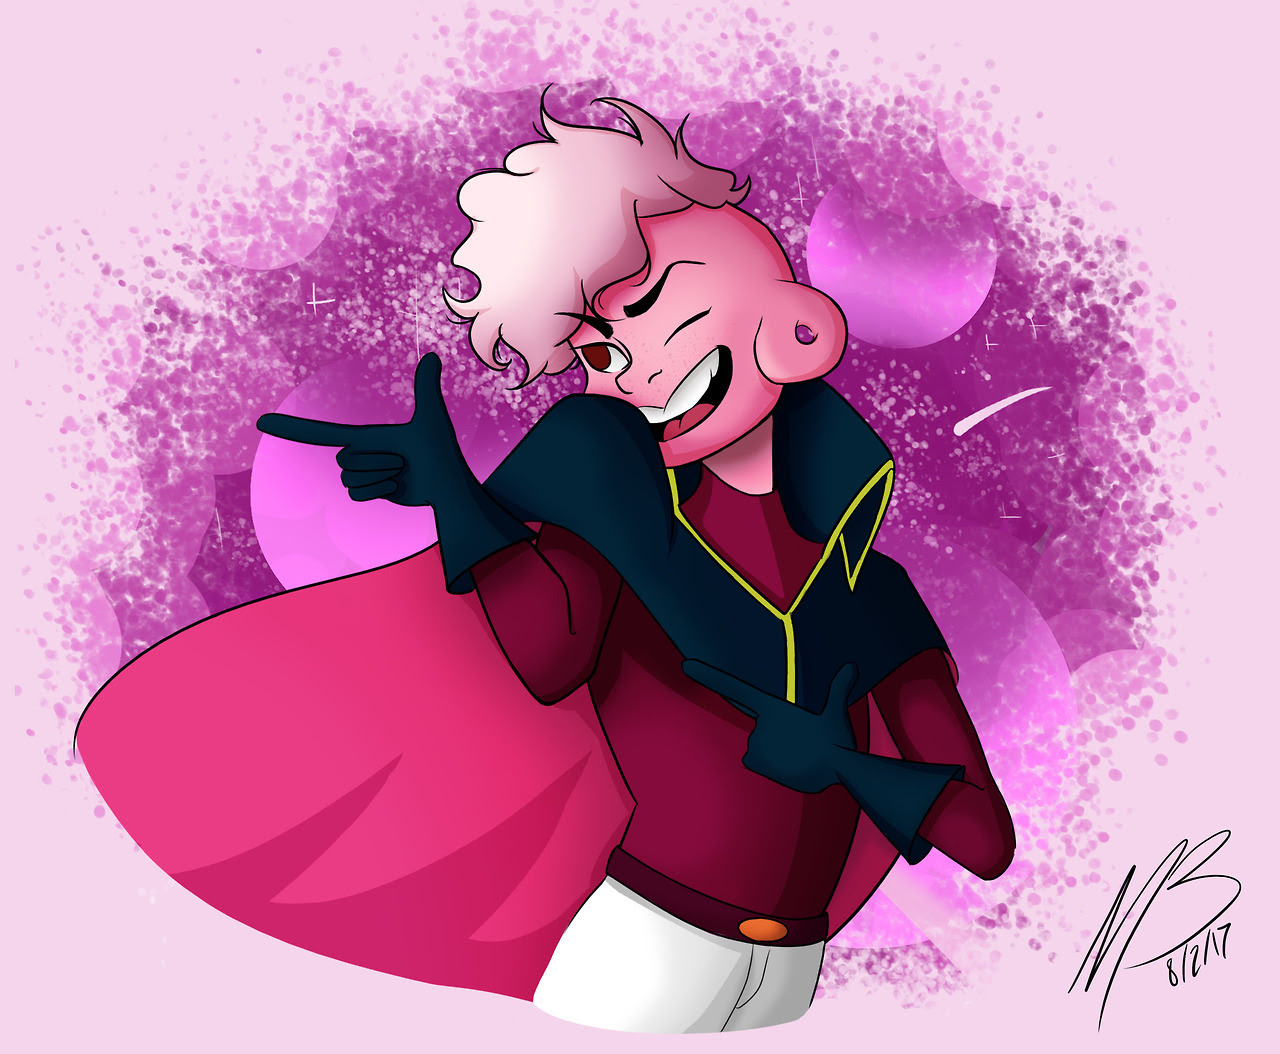 ~Bingo Bongo~ Im so exited for this arc, Lars has always been my favorite